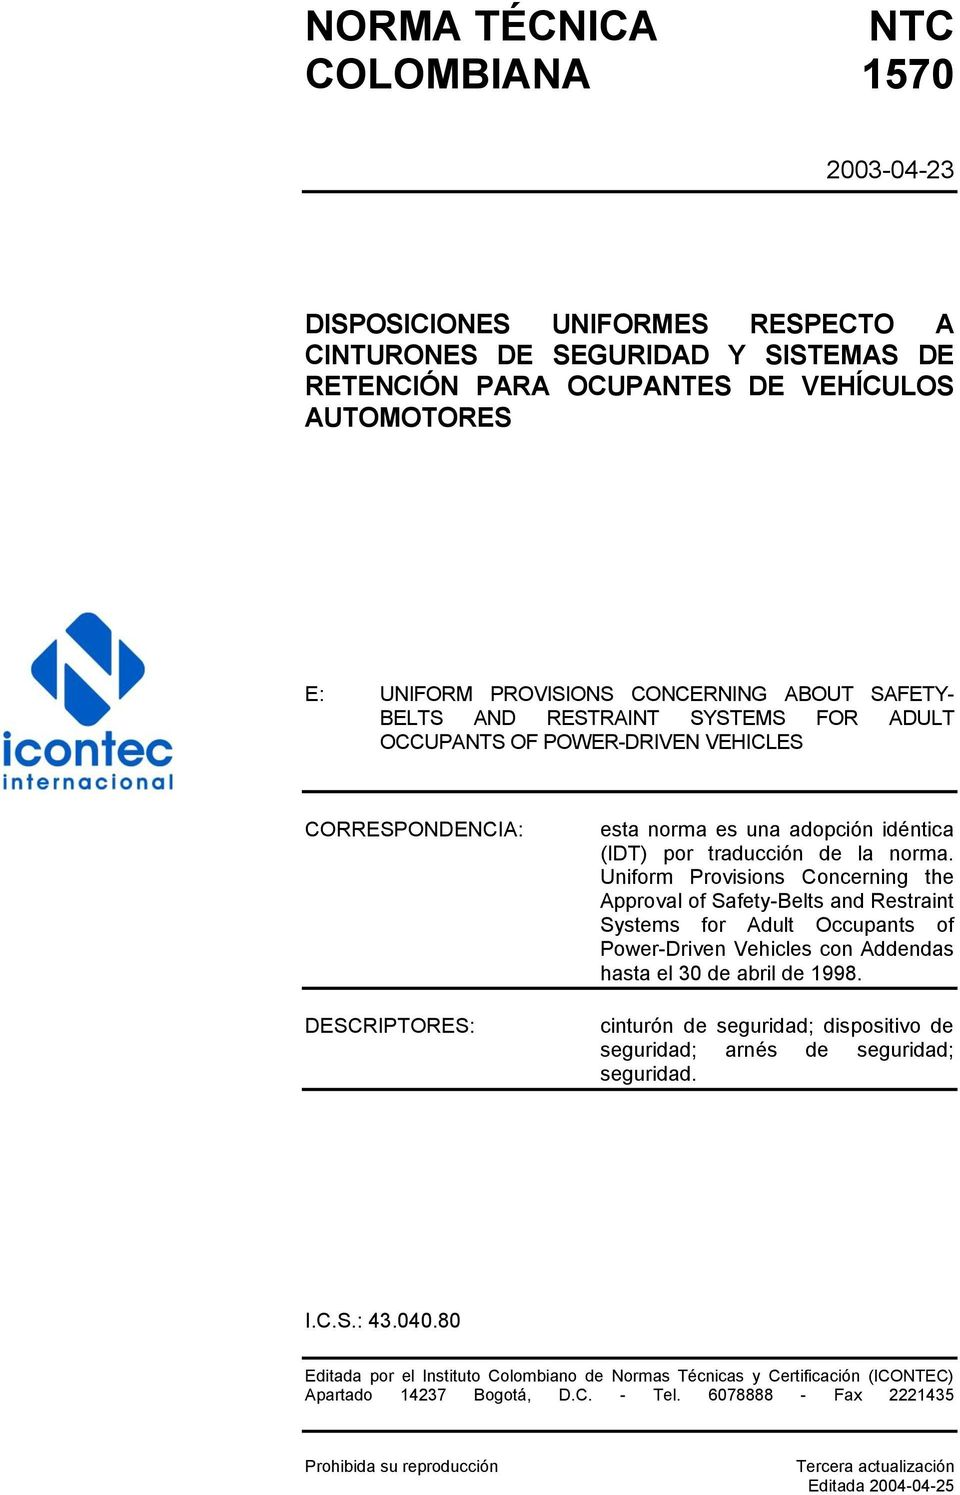 Uniform Provisions Concerning the Approval of Safety-Belts and Restraint Systems for Adult Occupants of Power-Driven Vehicles con Addendas hasta el 30 de abril de 1998.